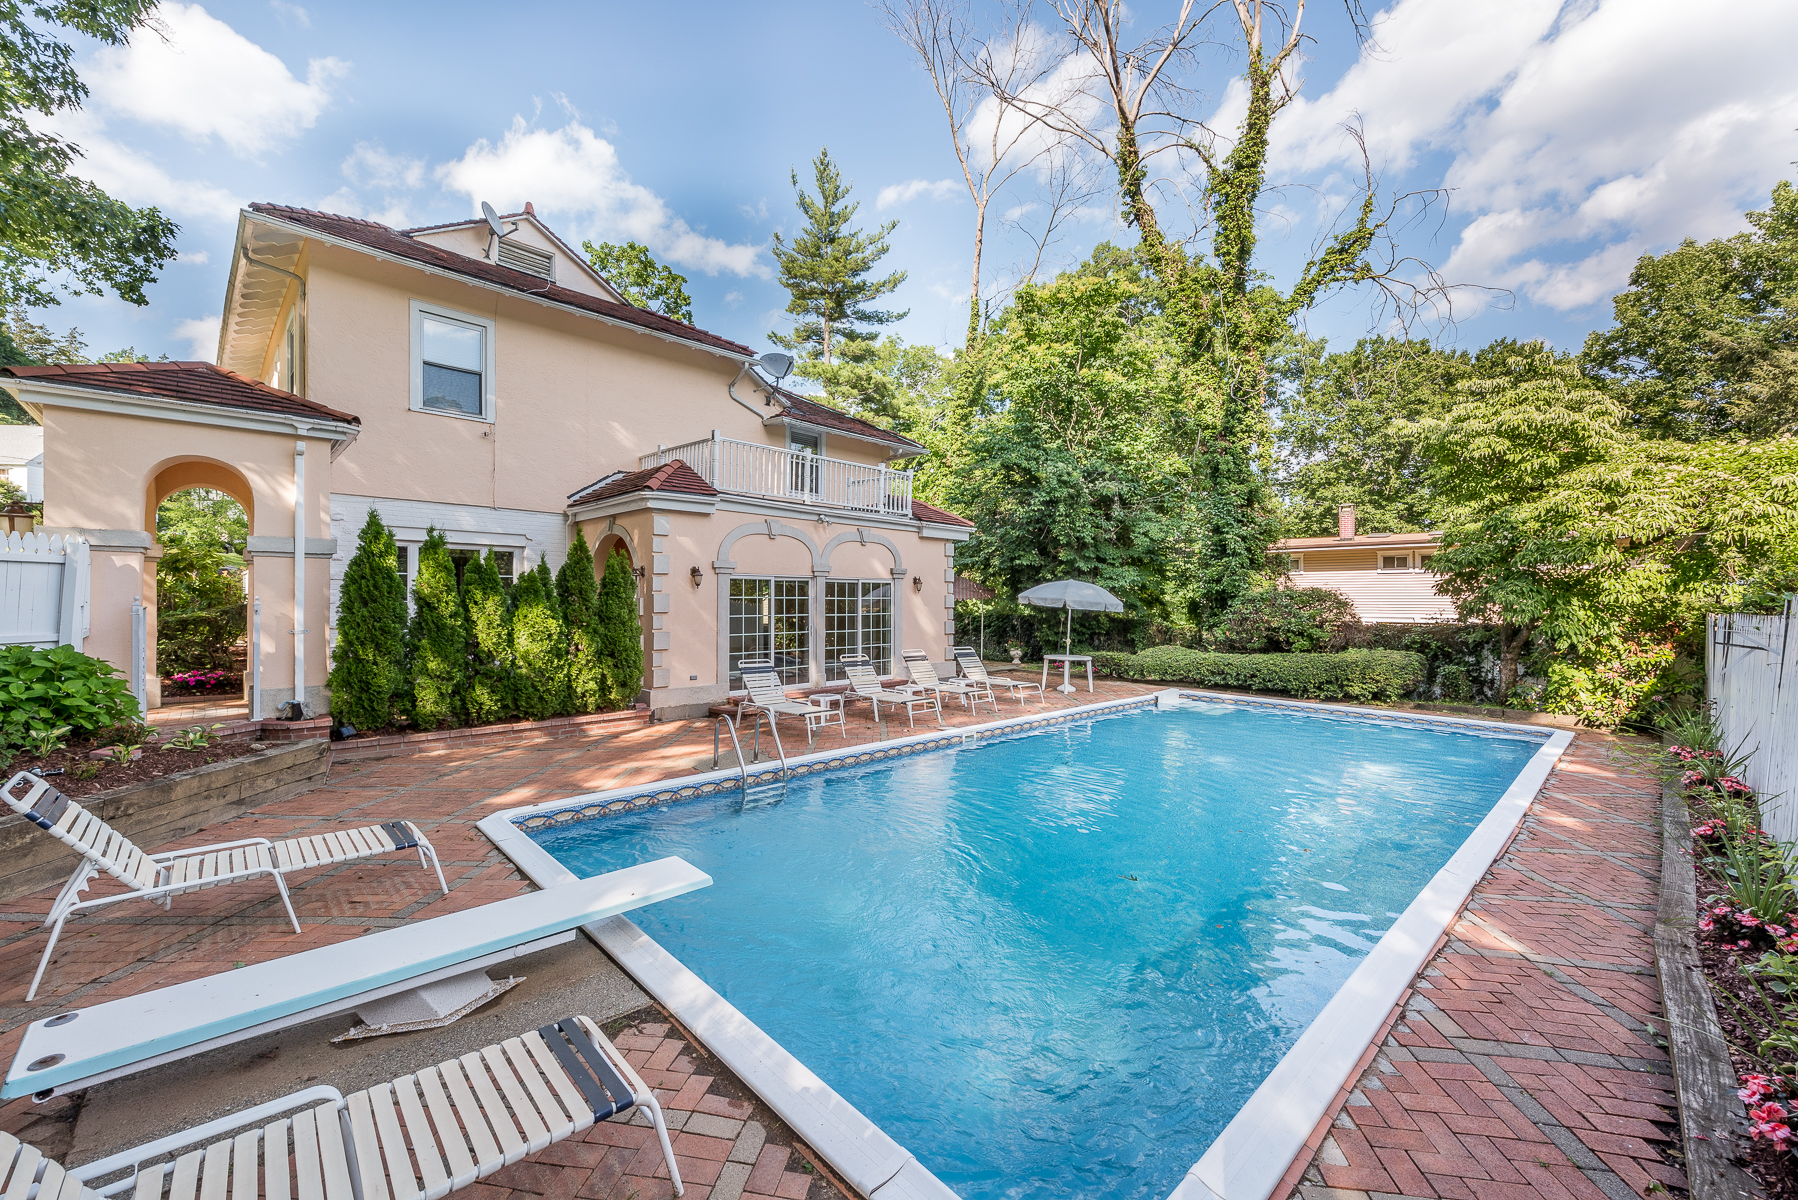 Single Family Home for Sale at Exquisite Mediterranean with Pool 126 Alta Vista Drive Crestwood, Yonkers, New York, 10710 United States